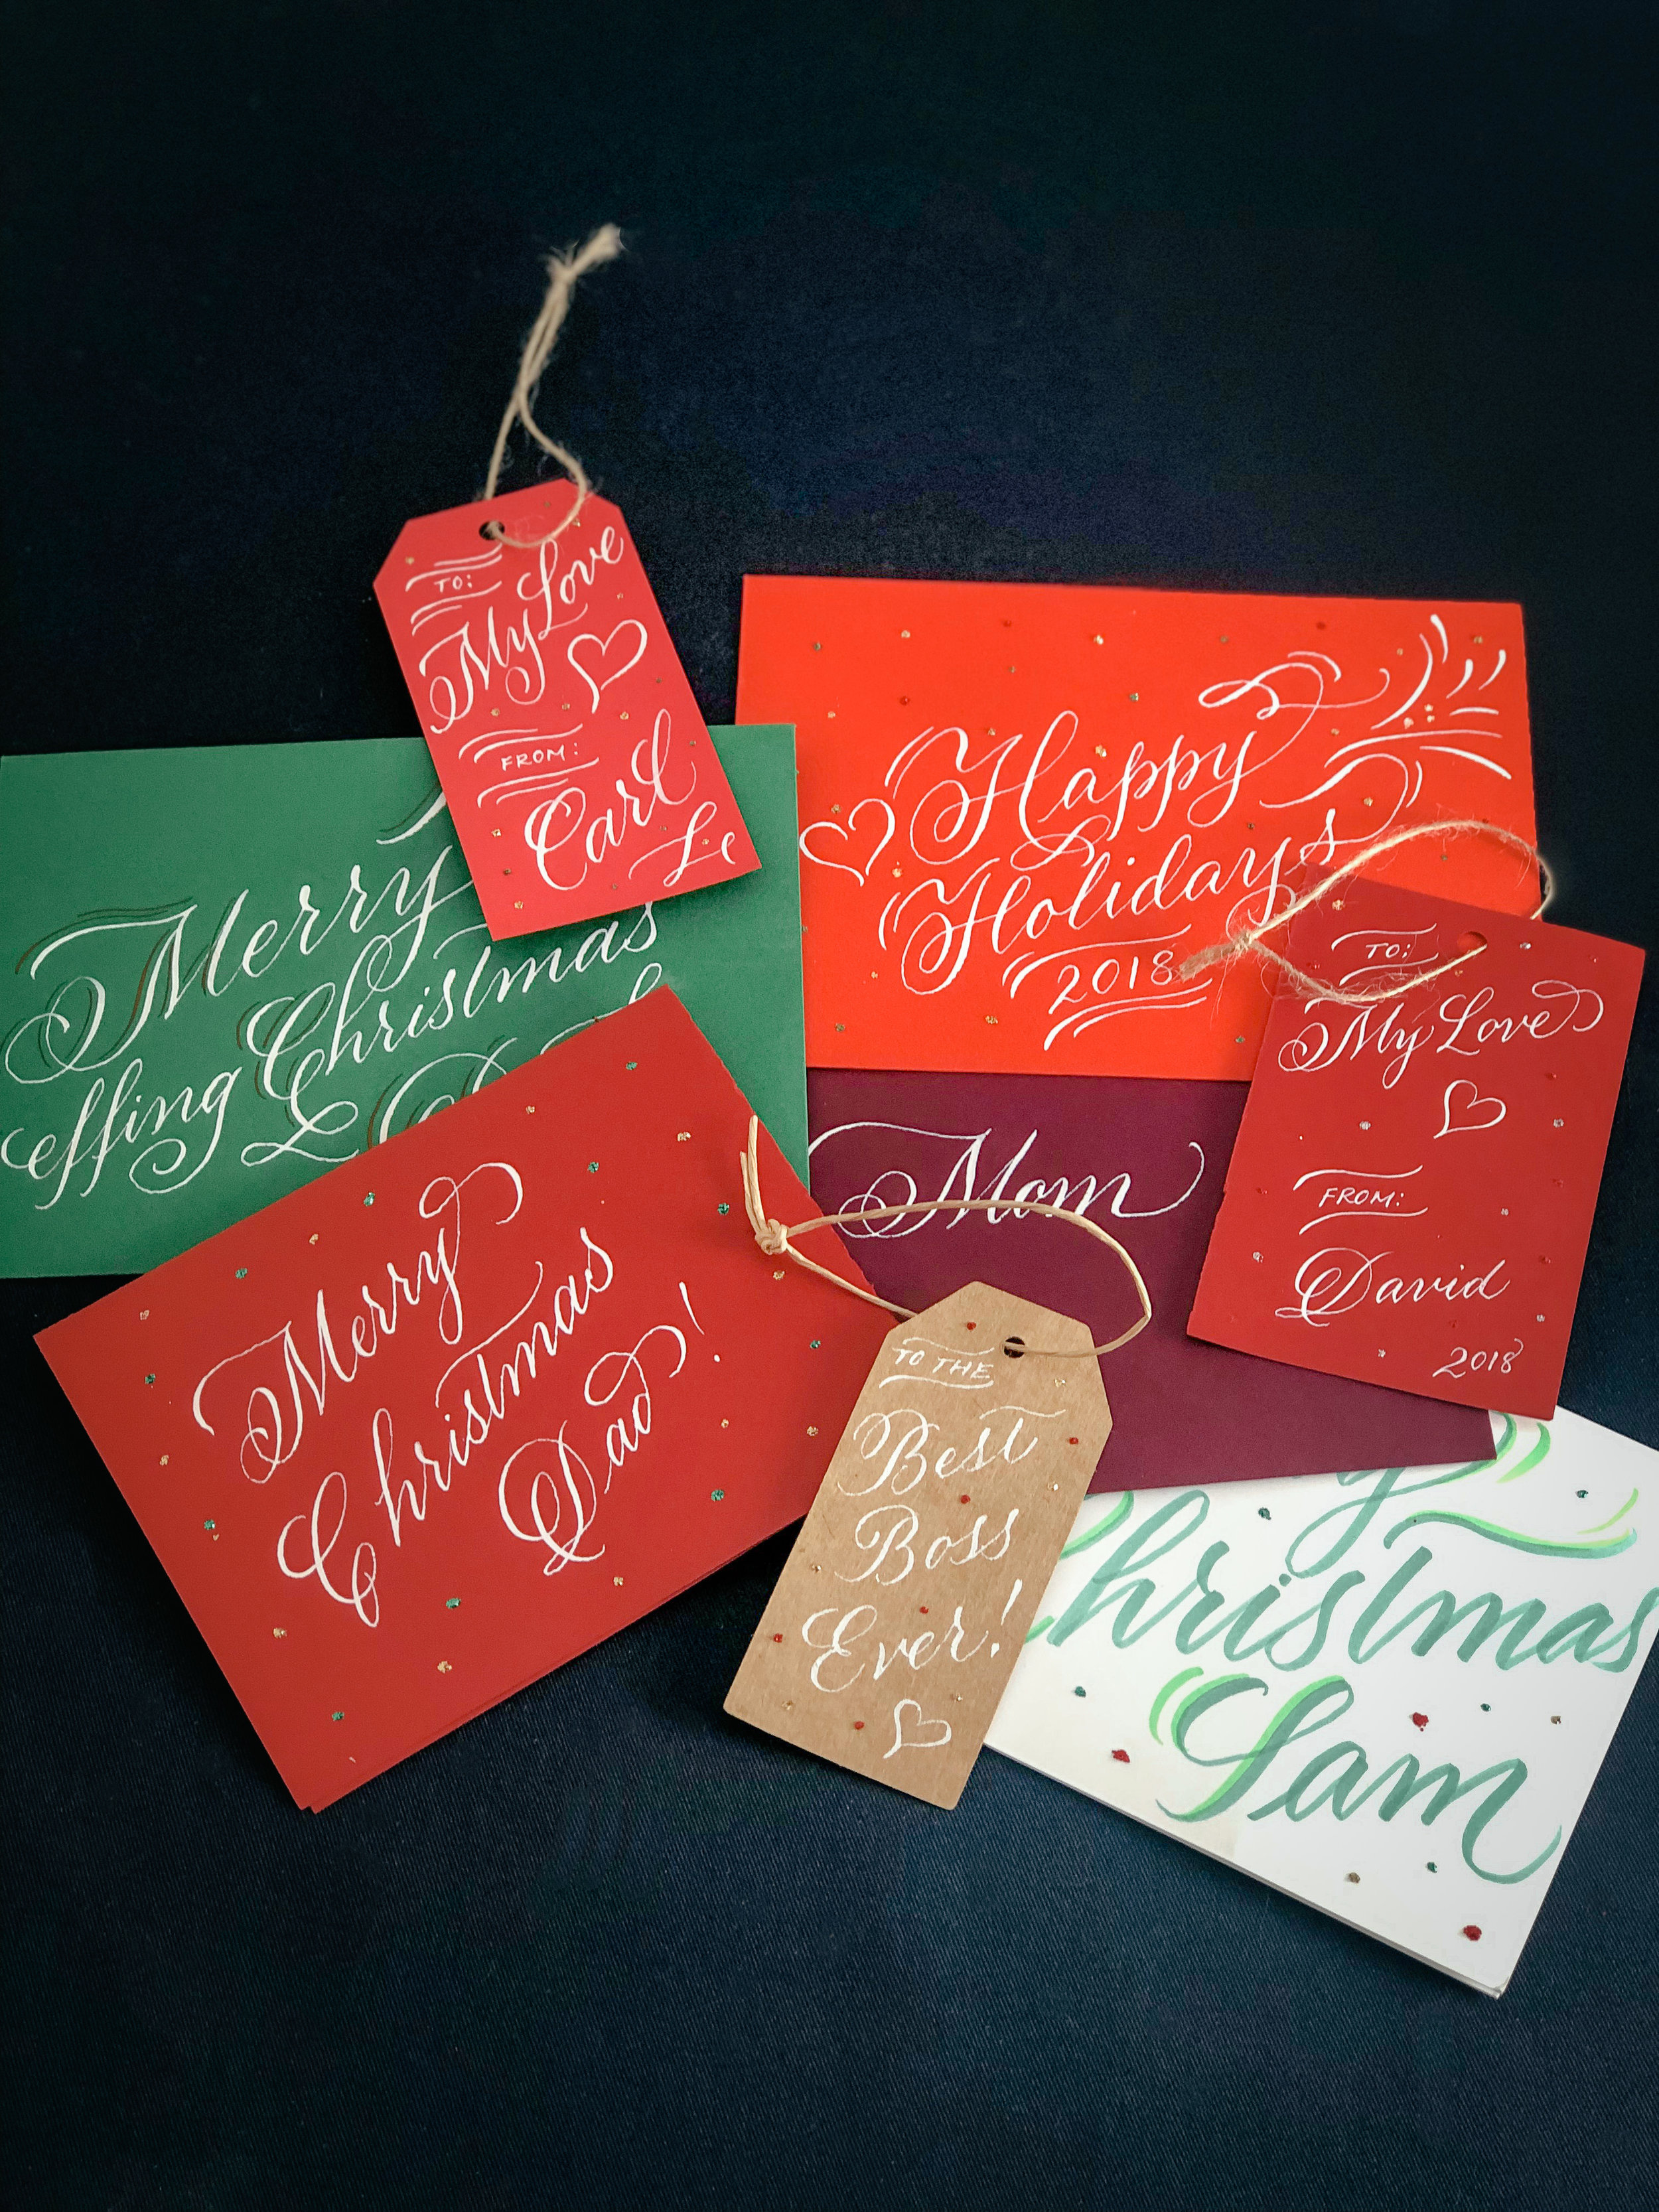 WeWork Christmas and Holiday card calligraphy | by Chavelli www.chavelli.com